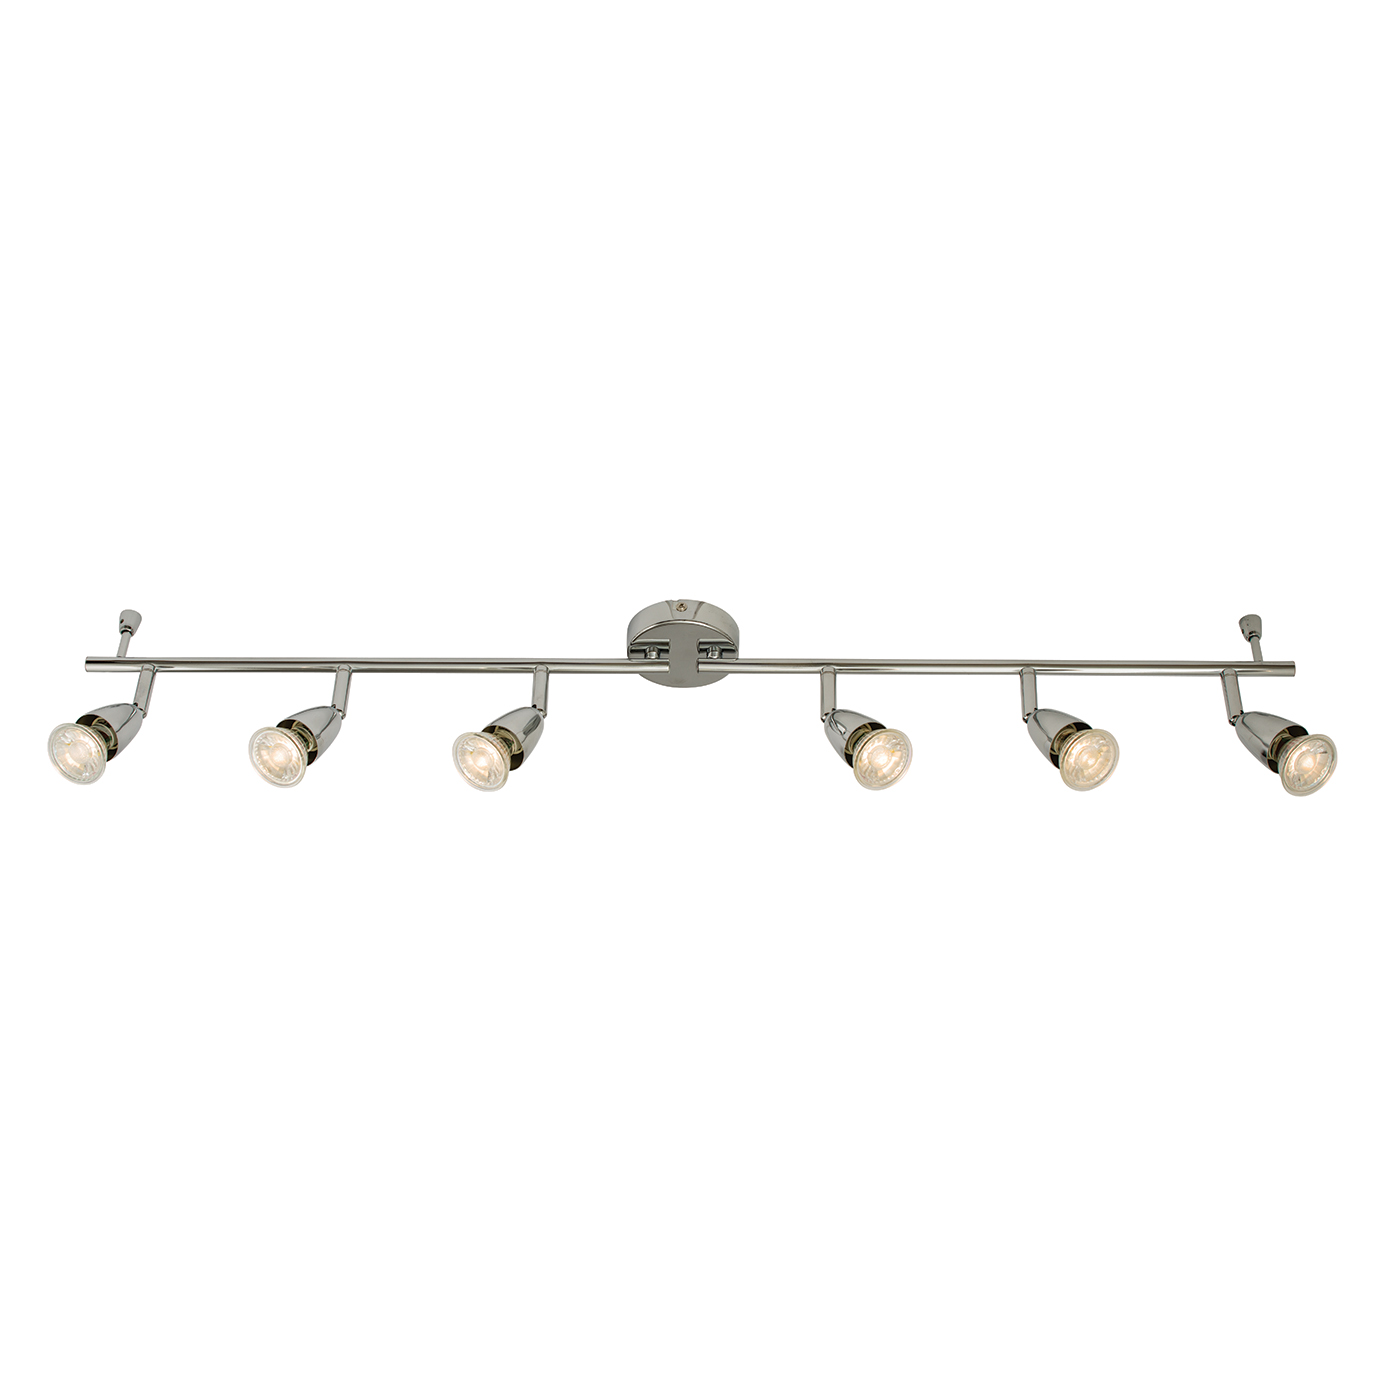 Endon Amalfi ceiling spotlight bar 6x 50W Chrome effect plate